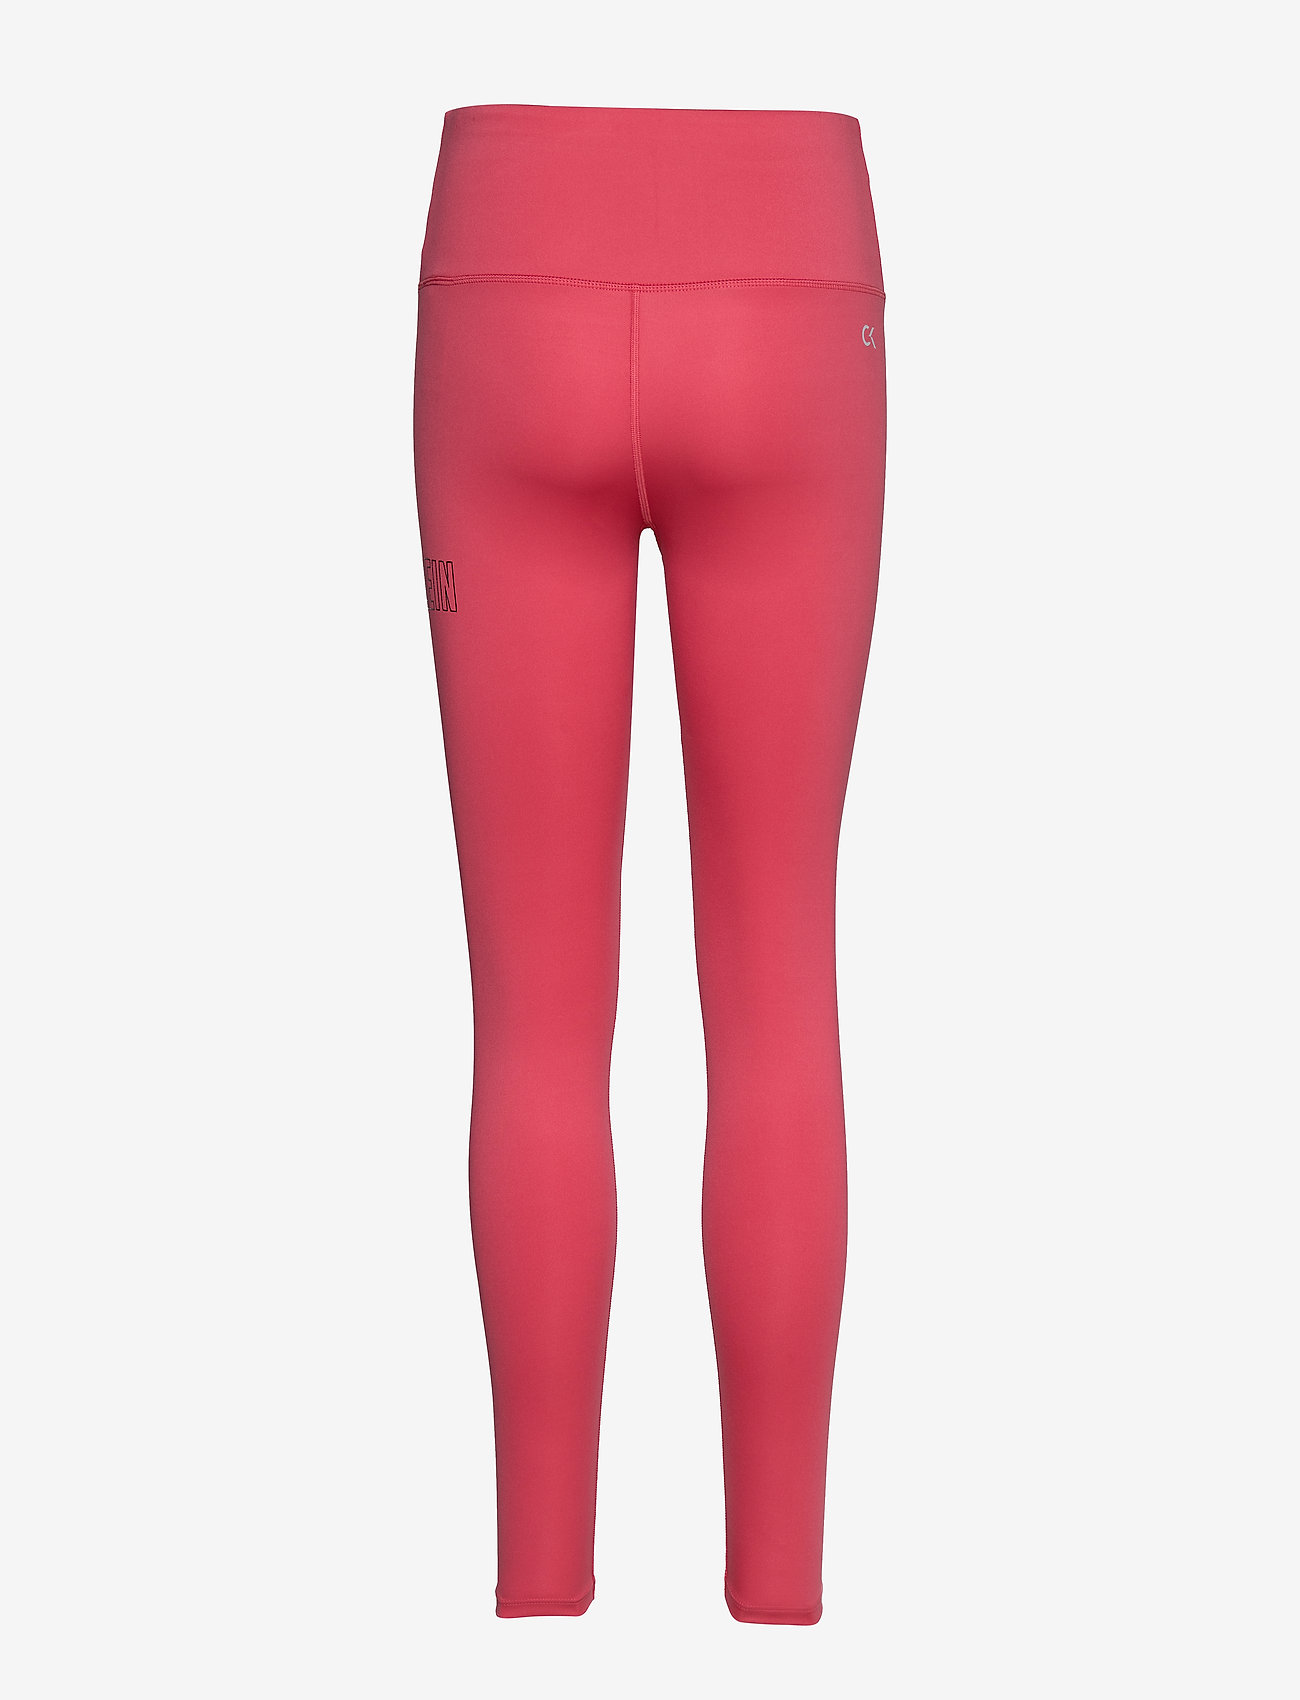 Calvin Klein Performance - FULL LENGTH TIGHT - running & training tights - claret red - 1